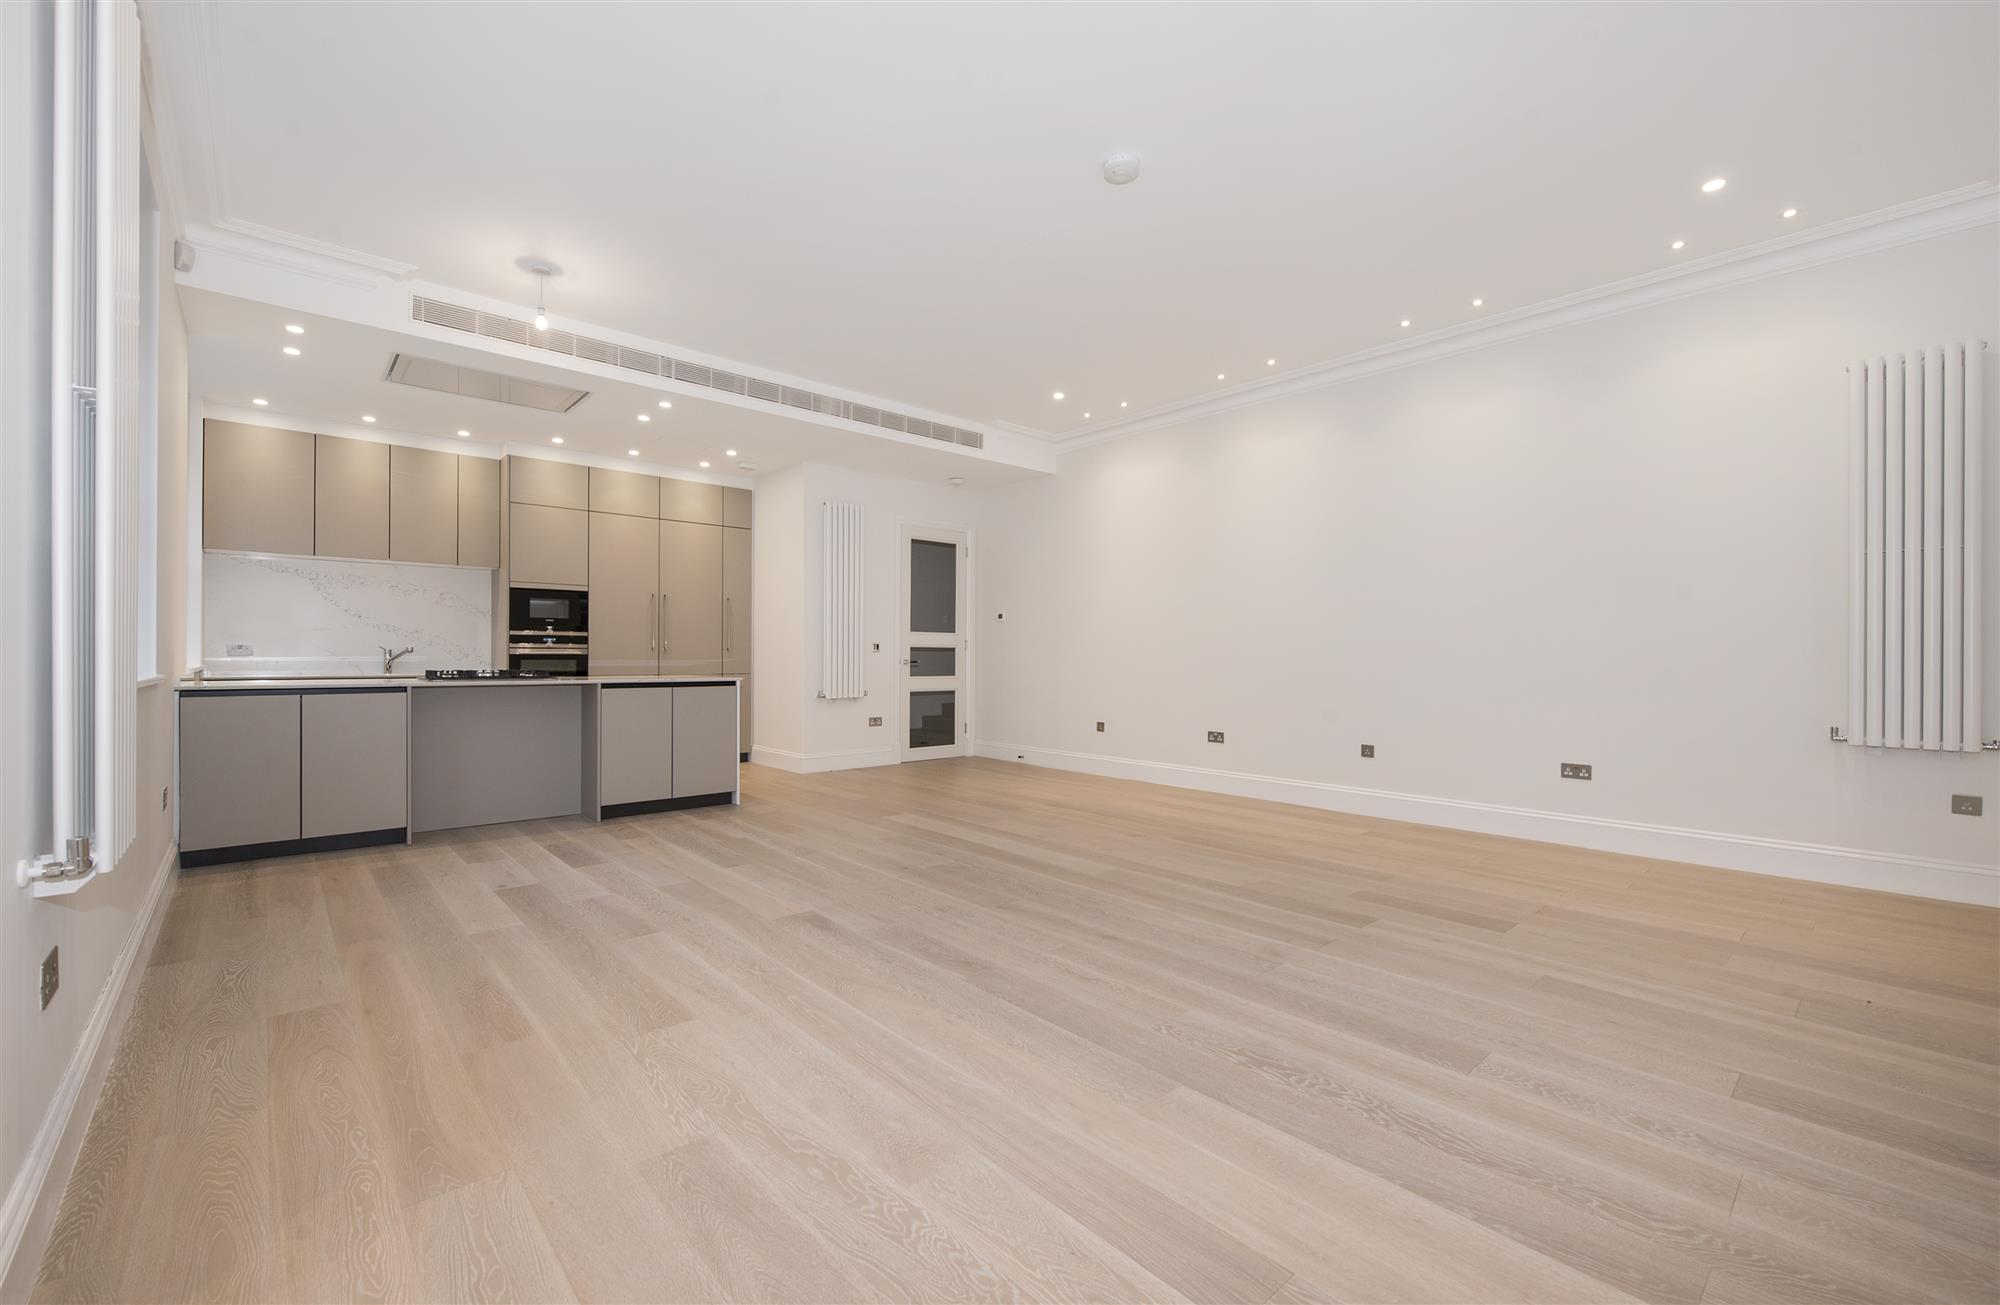 RECEPTION ROOM / OPEN PLAN KITCHEN